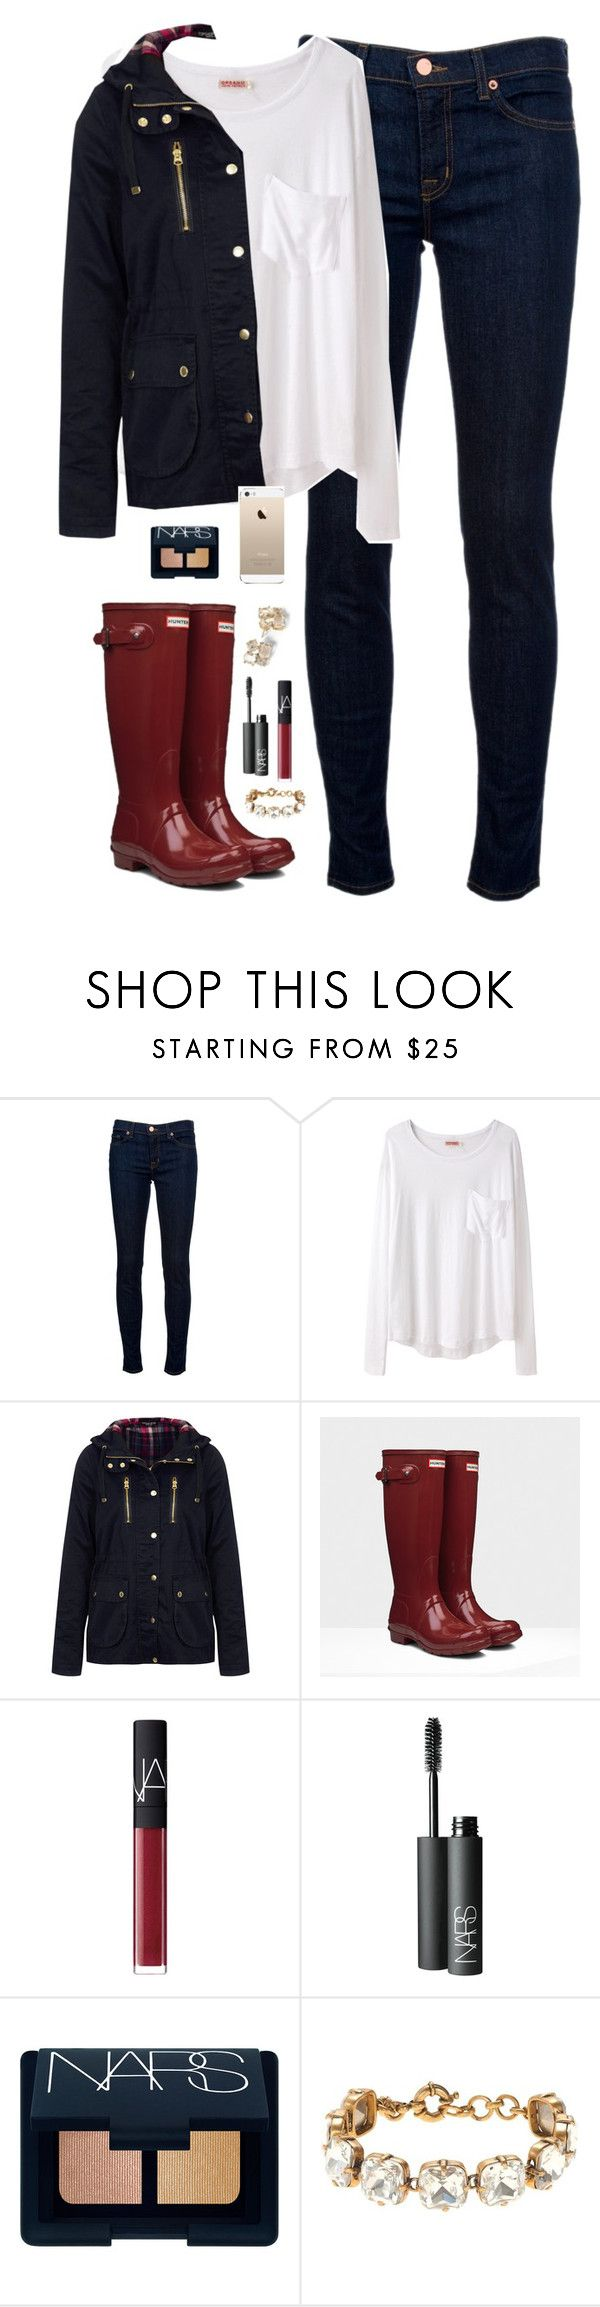 Collages of fashion sites like polyvore 6 Top Online Photography Portfolio Hosting Options